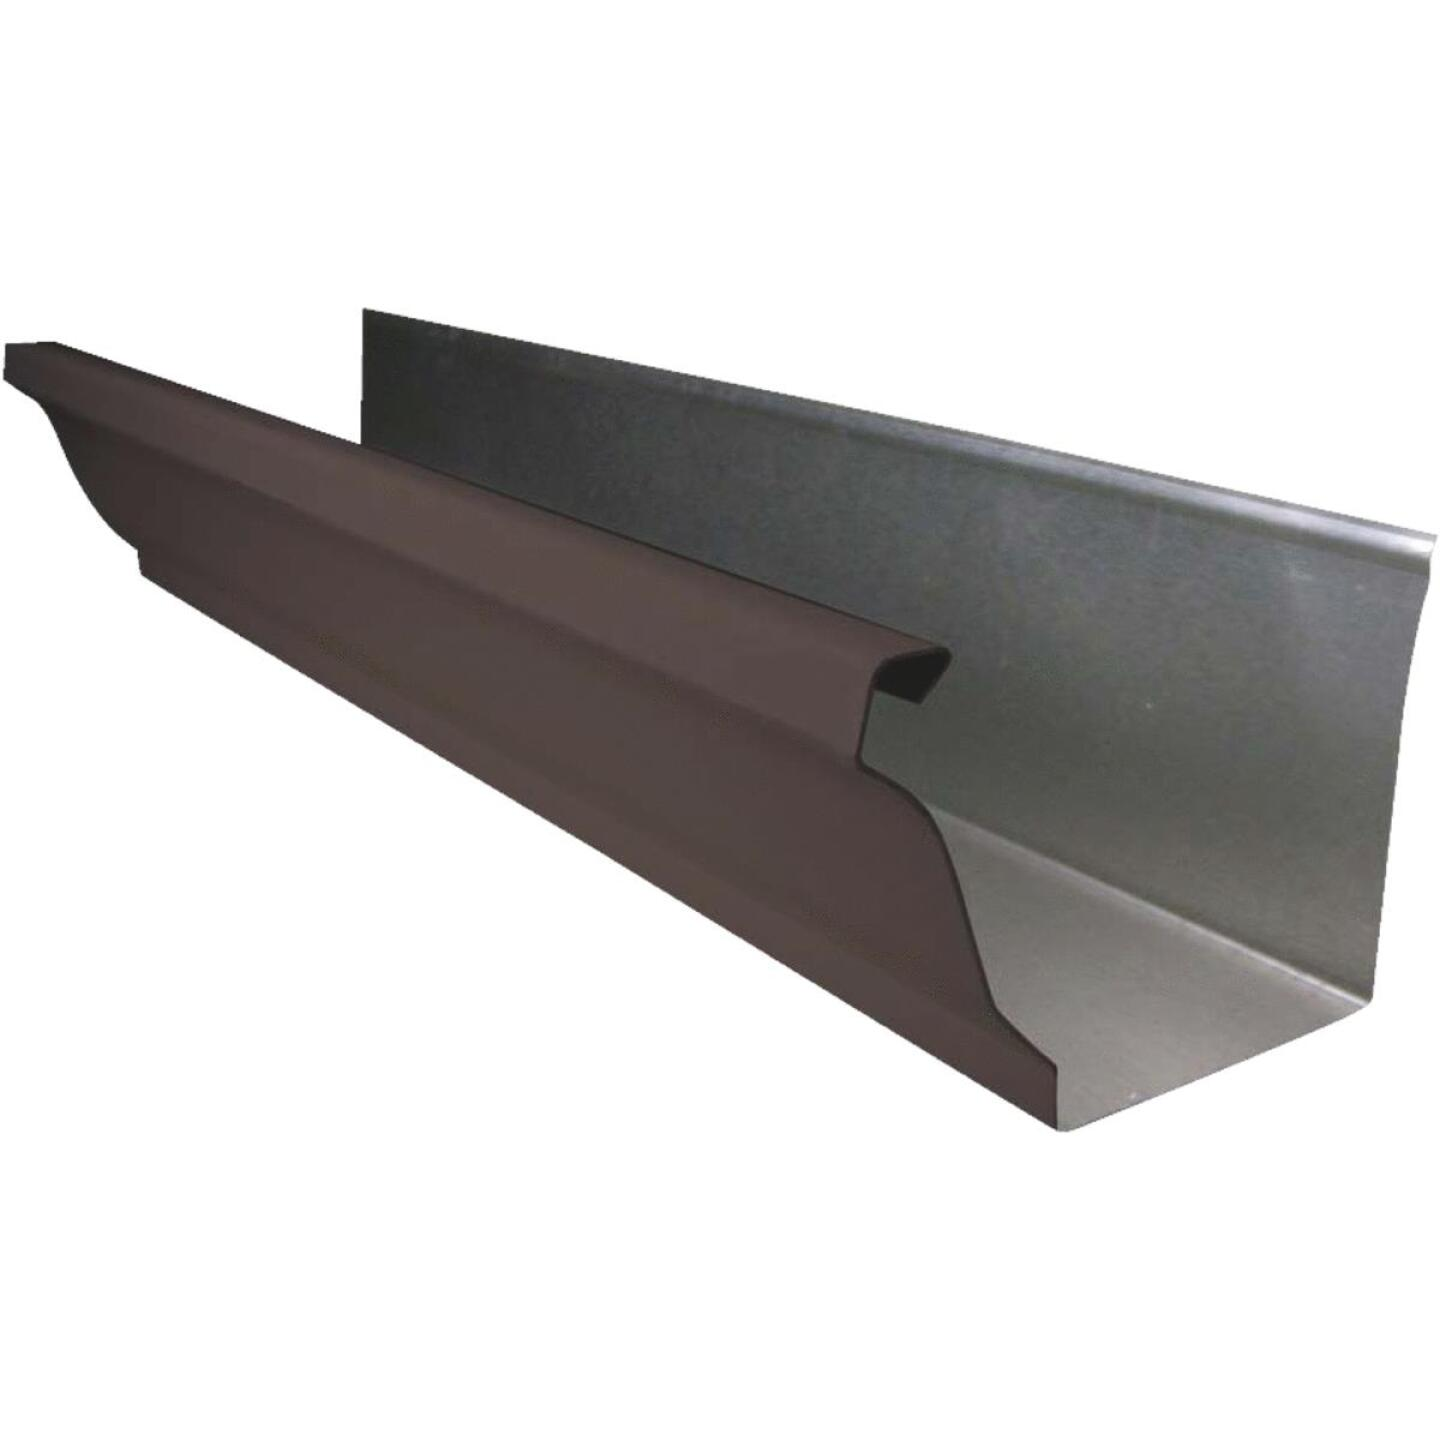 NorWesco 4 In. x 10 Ft. K-Style Brown Galvanized Gutter Image 1